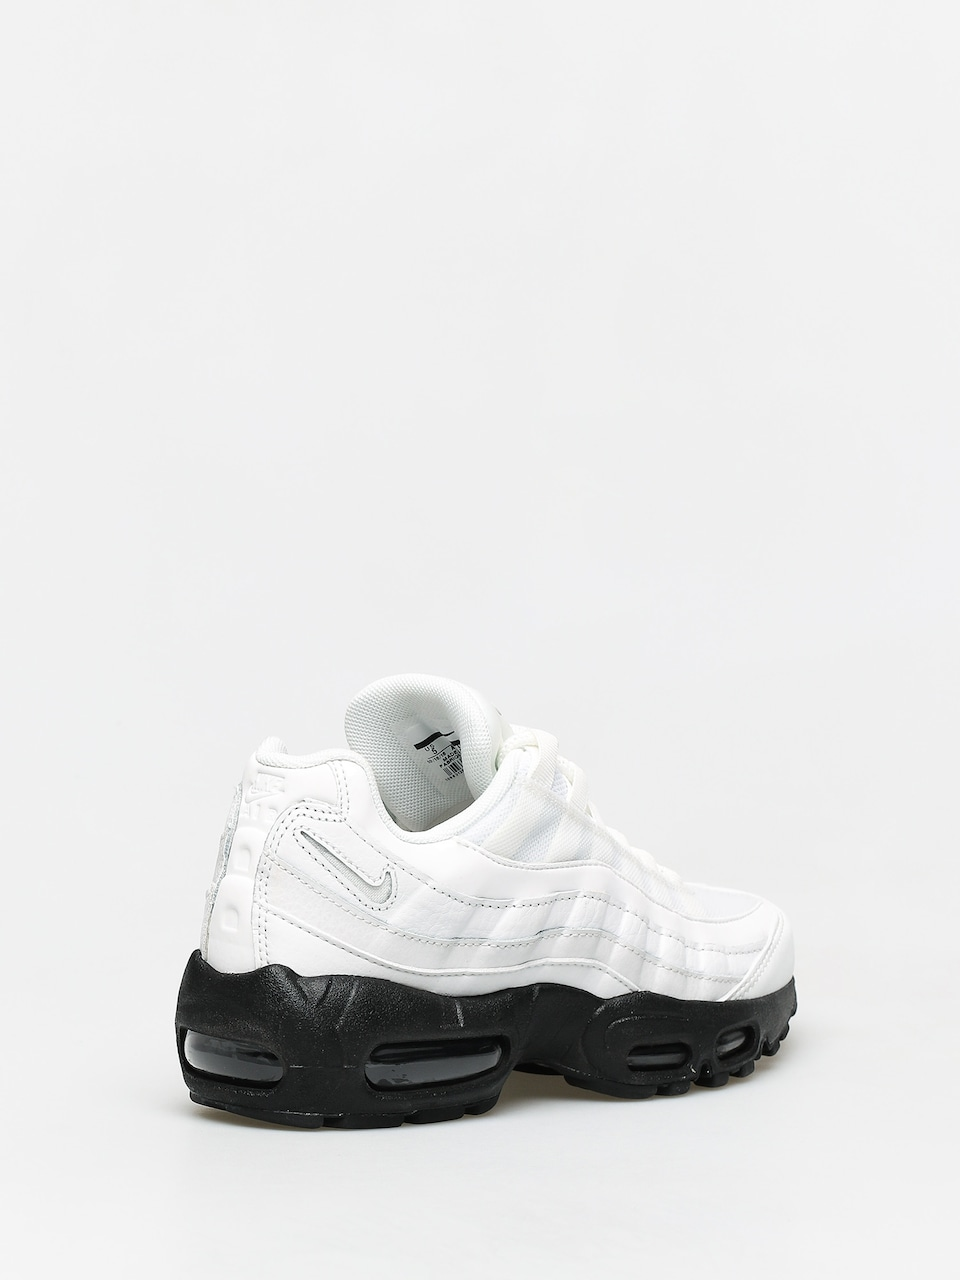 Nike Air Max 95 Special Edition Shoes